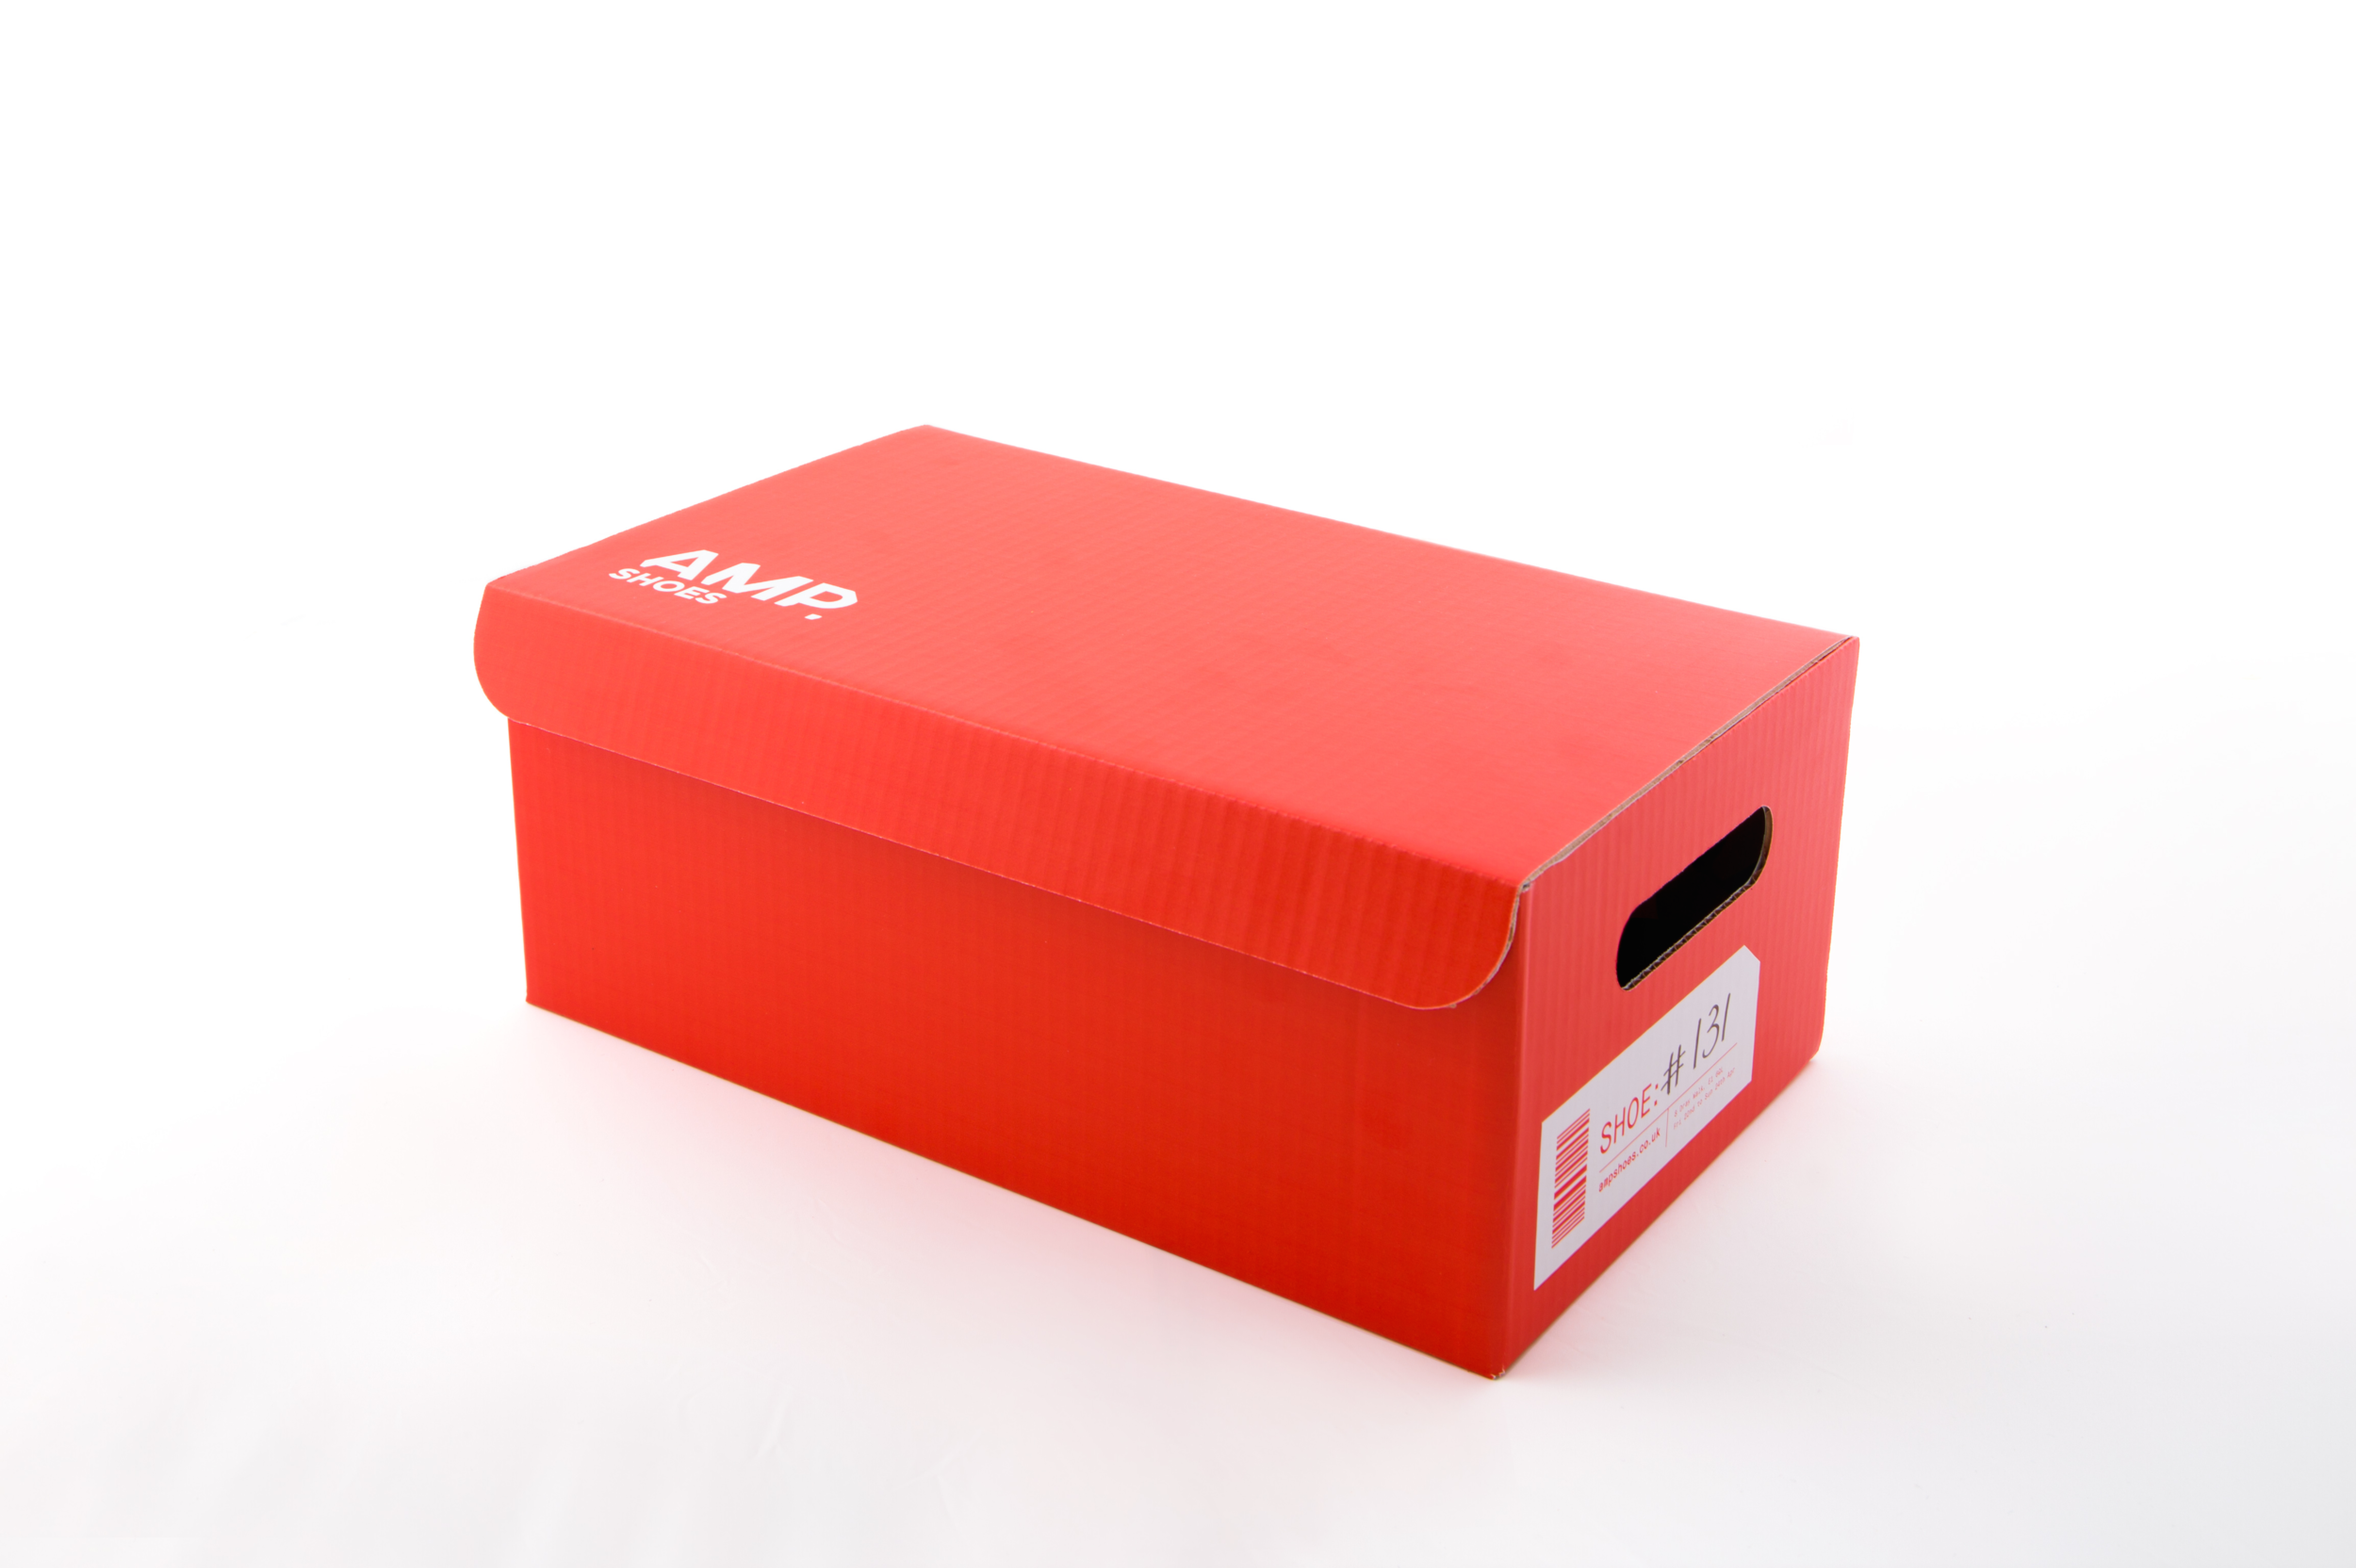 Direct mail came in the form of shoeboxes